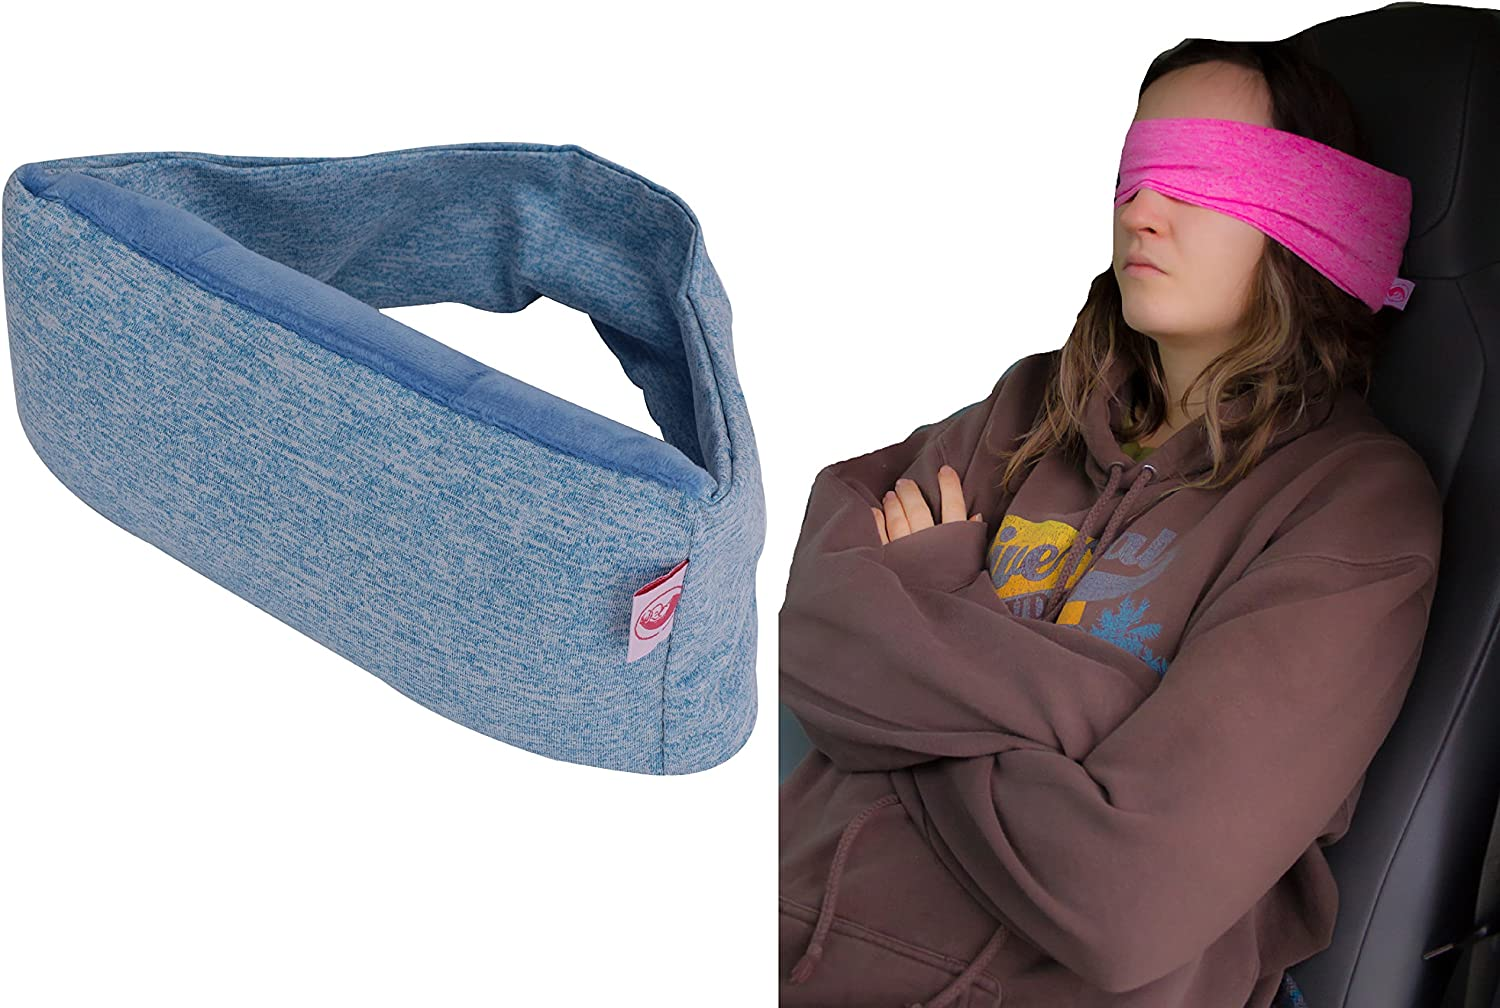 2 in 1 Albuquerque Mall Voyage Travel Pillow Flight Essentials Eye Mask Long and OFFer